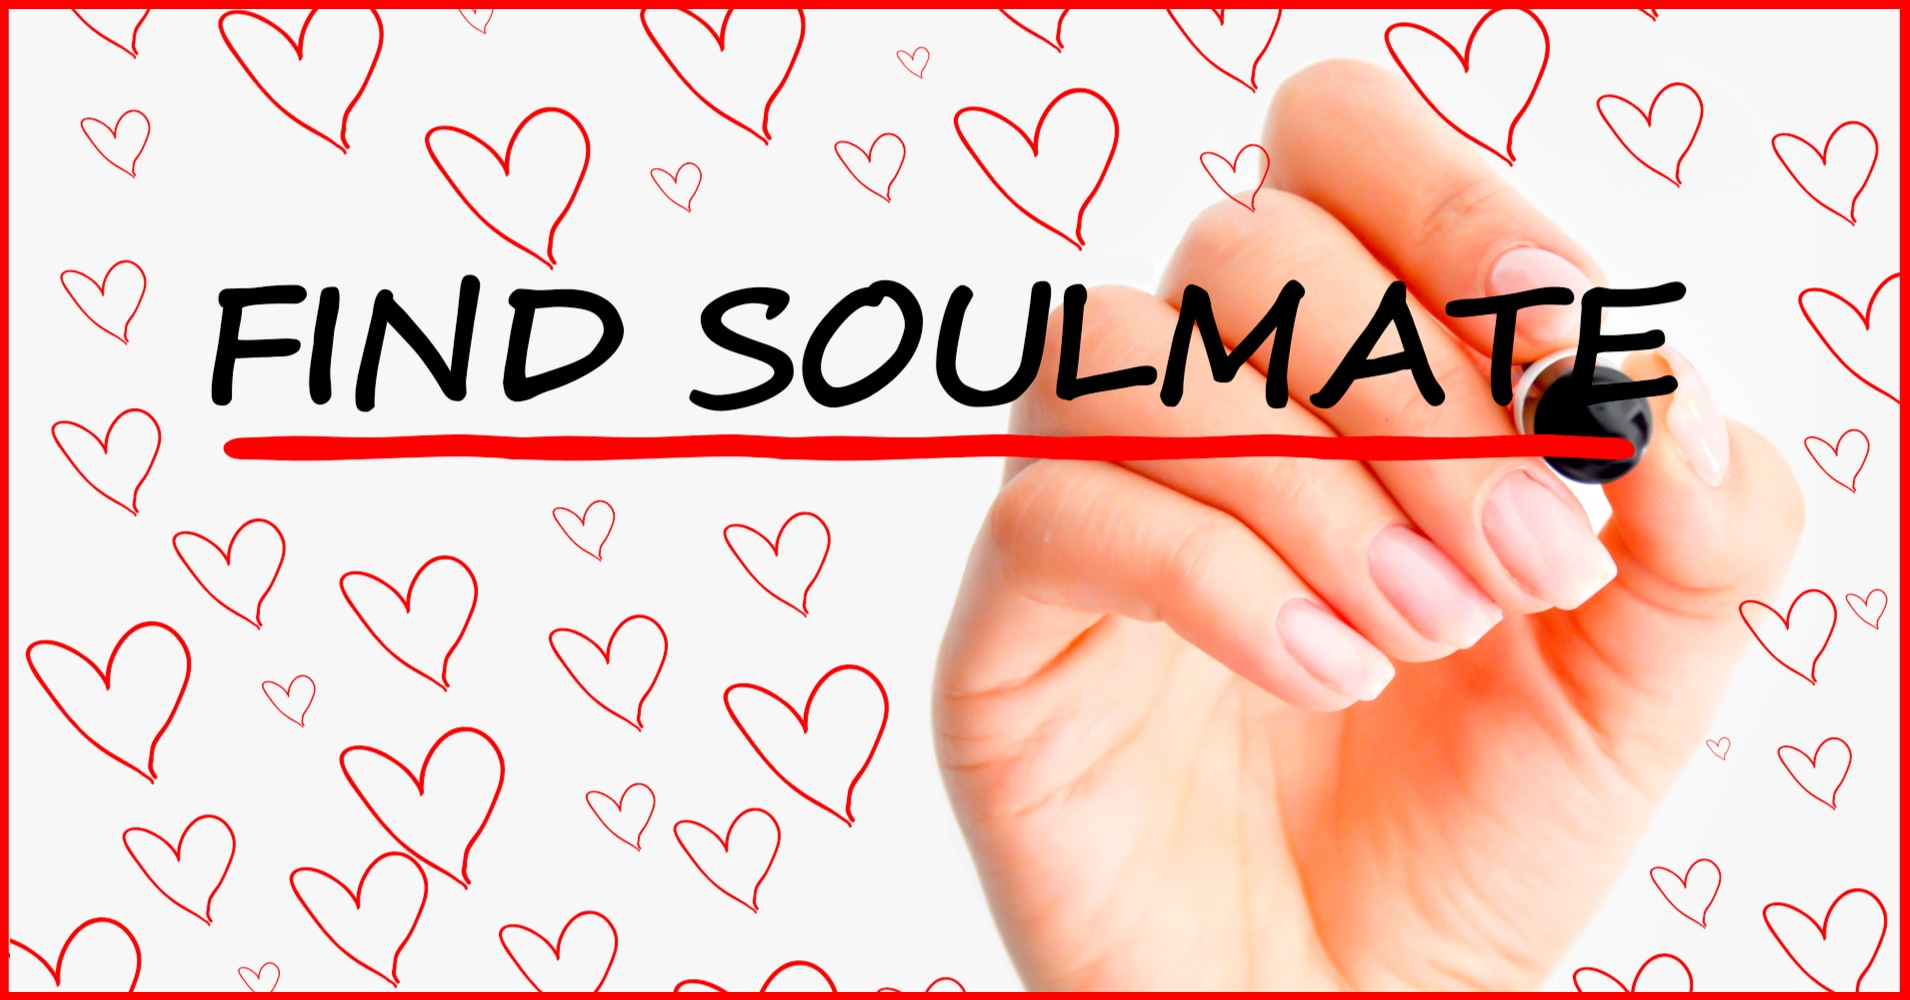 When Will I Meet My Soulmate? Question 1 - How do you want